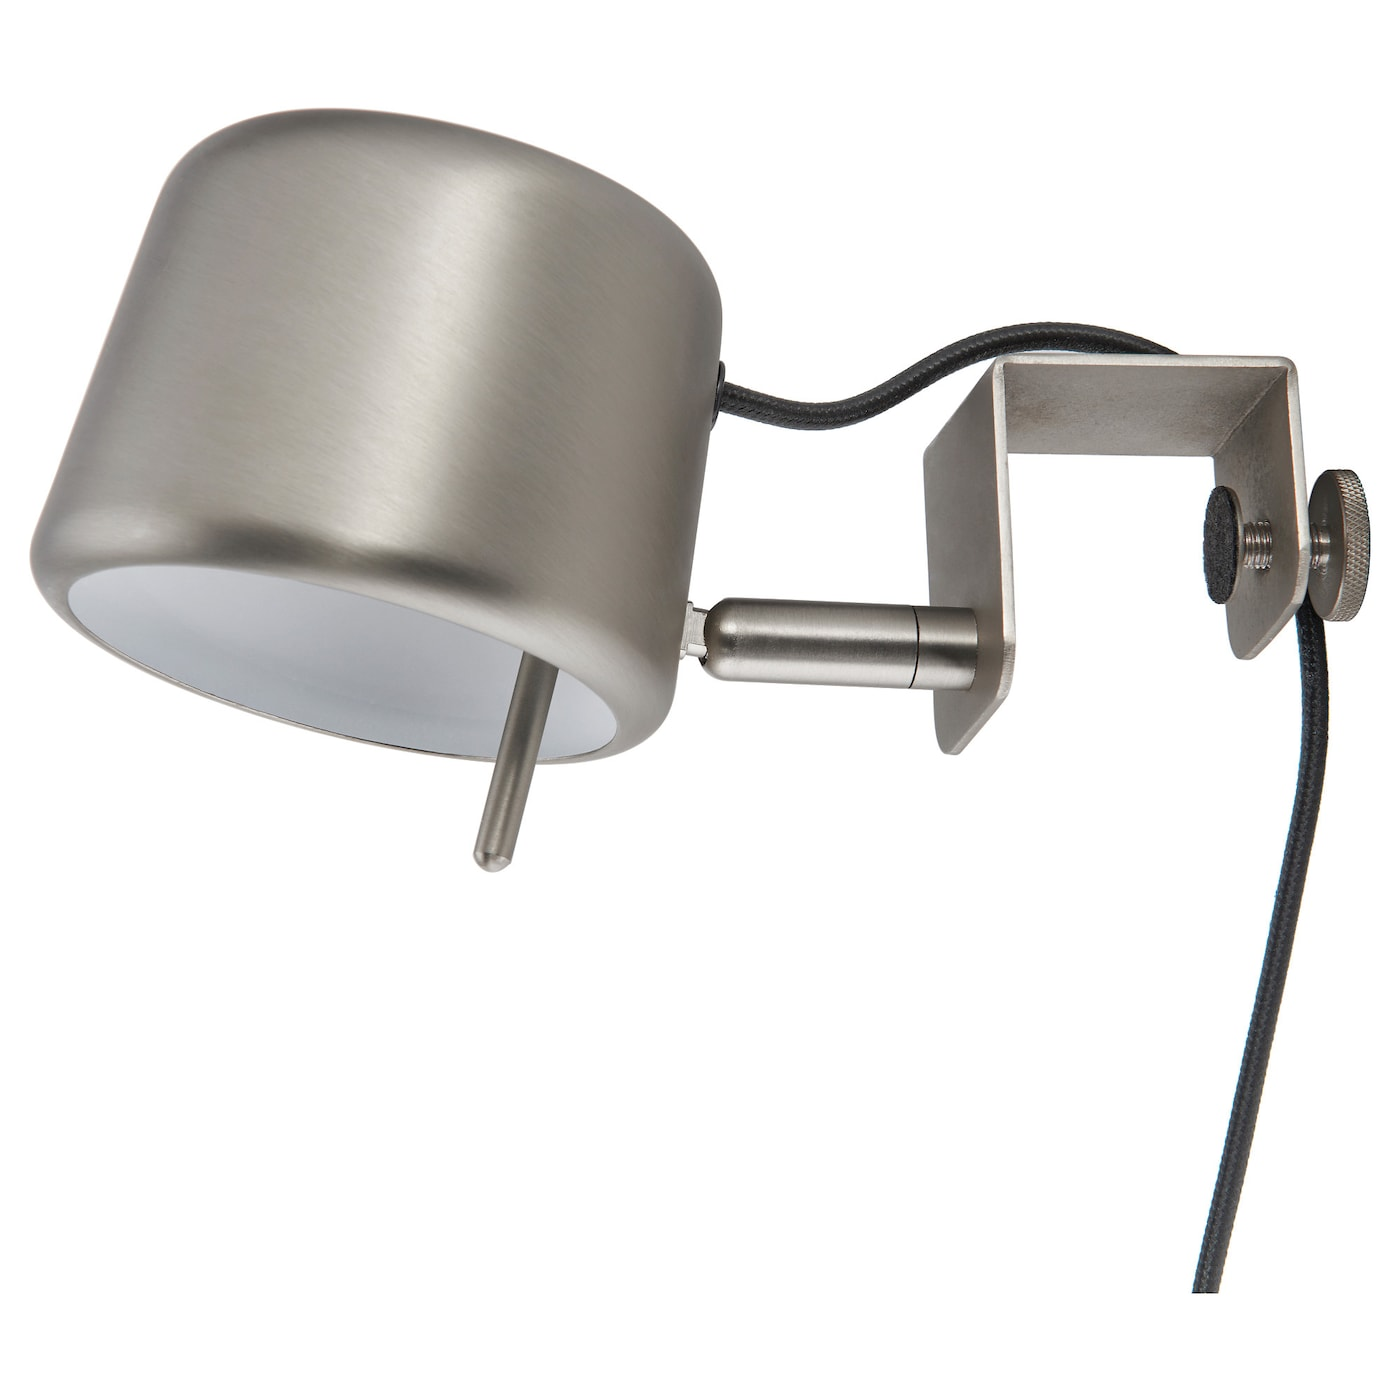 Ikea Varv Clamp Spotlight Easy To Attach The Headboard For Reading Light In Your Bed